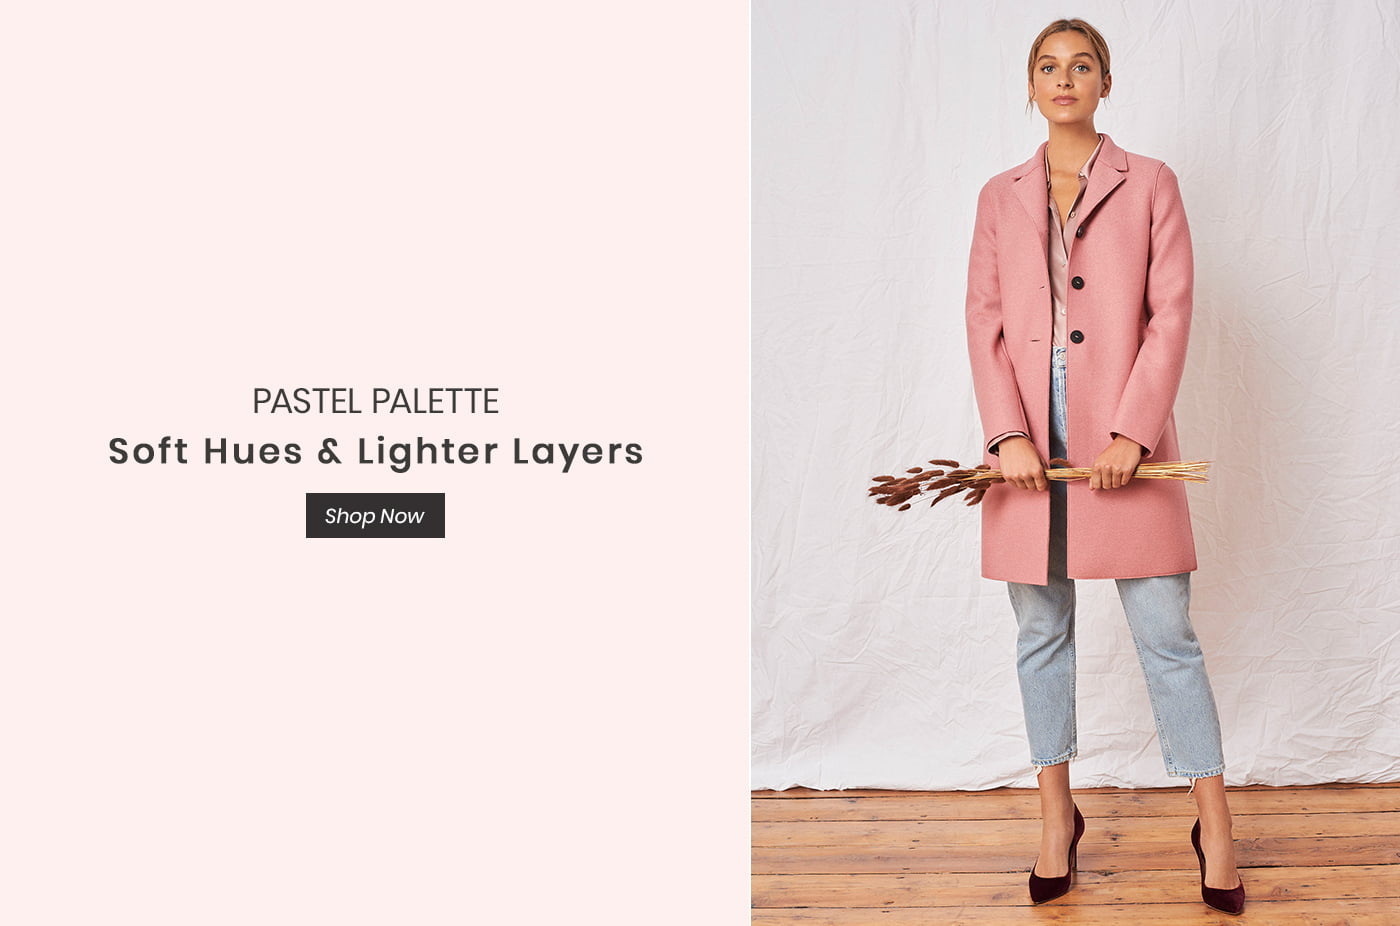 Pastel Palette: Soft Hues & Lighter Layers